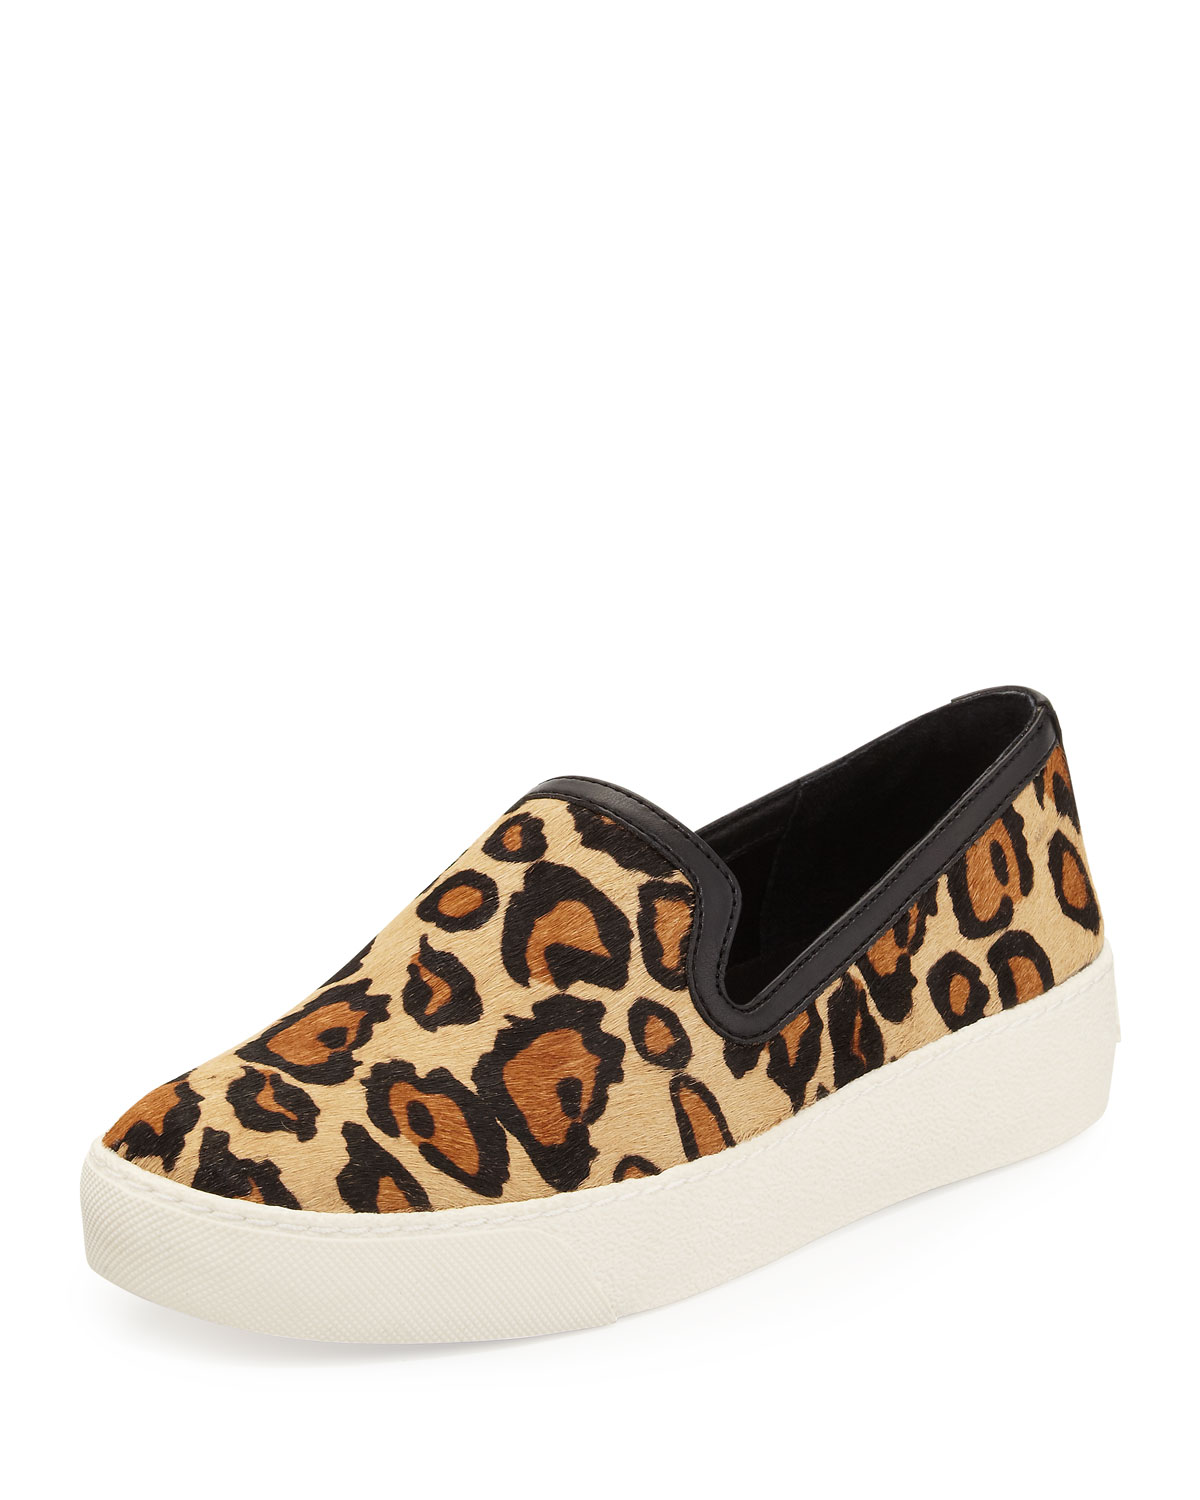 4b1cdf124 Sam Edelman Becker Leopard-Print Slip-On